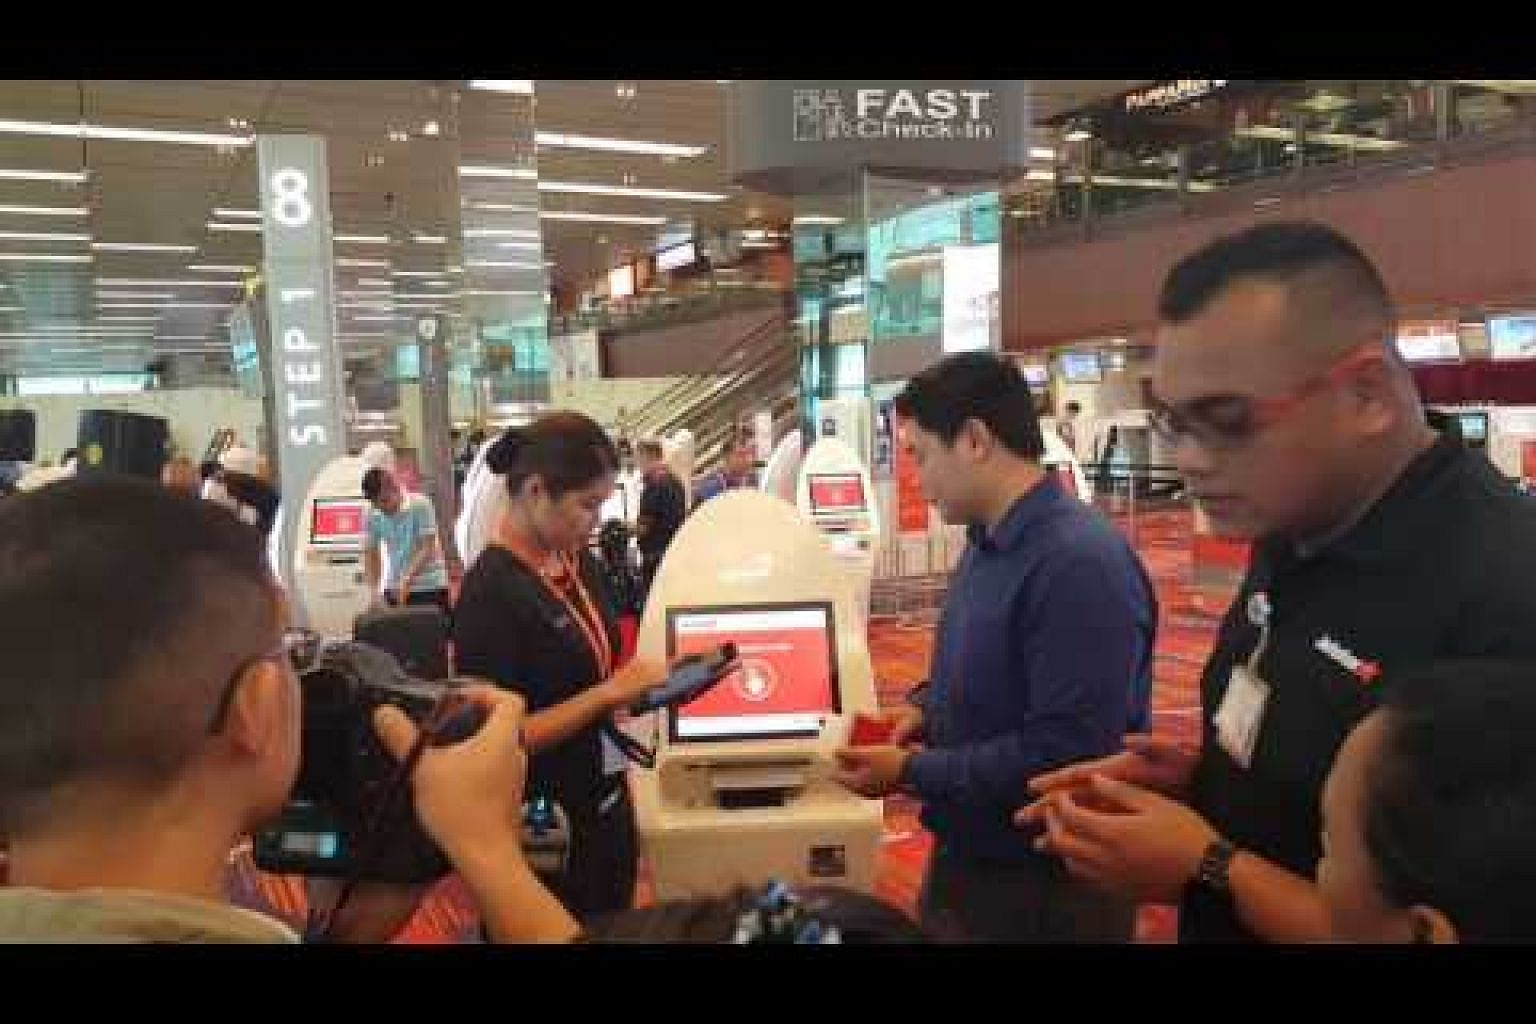 Jetstar Asia has deployed roving check-in agents to help ease queues